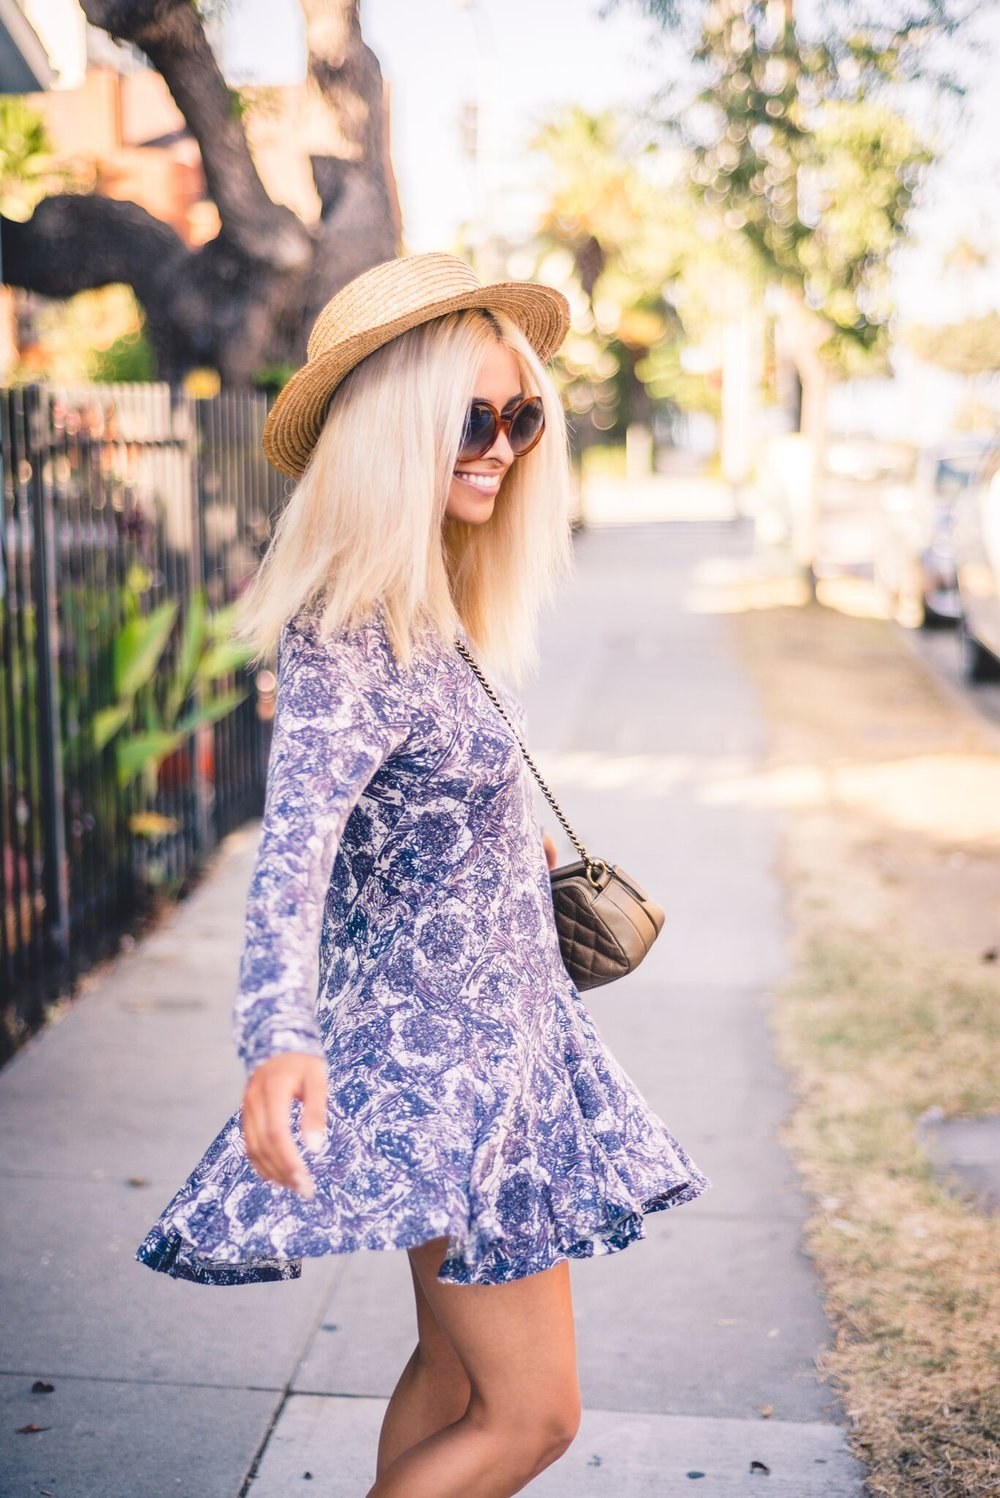 sundress_freepeople dress_savvy javvy_santa monica_la blogger_best la fashion blogger_icy blonde hair_blonde lob_vintage boat hat_chanel bag_chanel camera bag_selwyn ramos